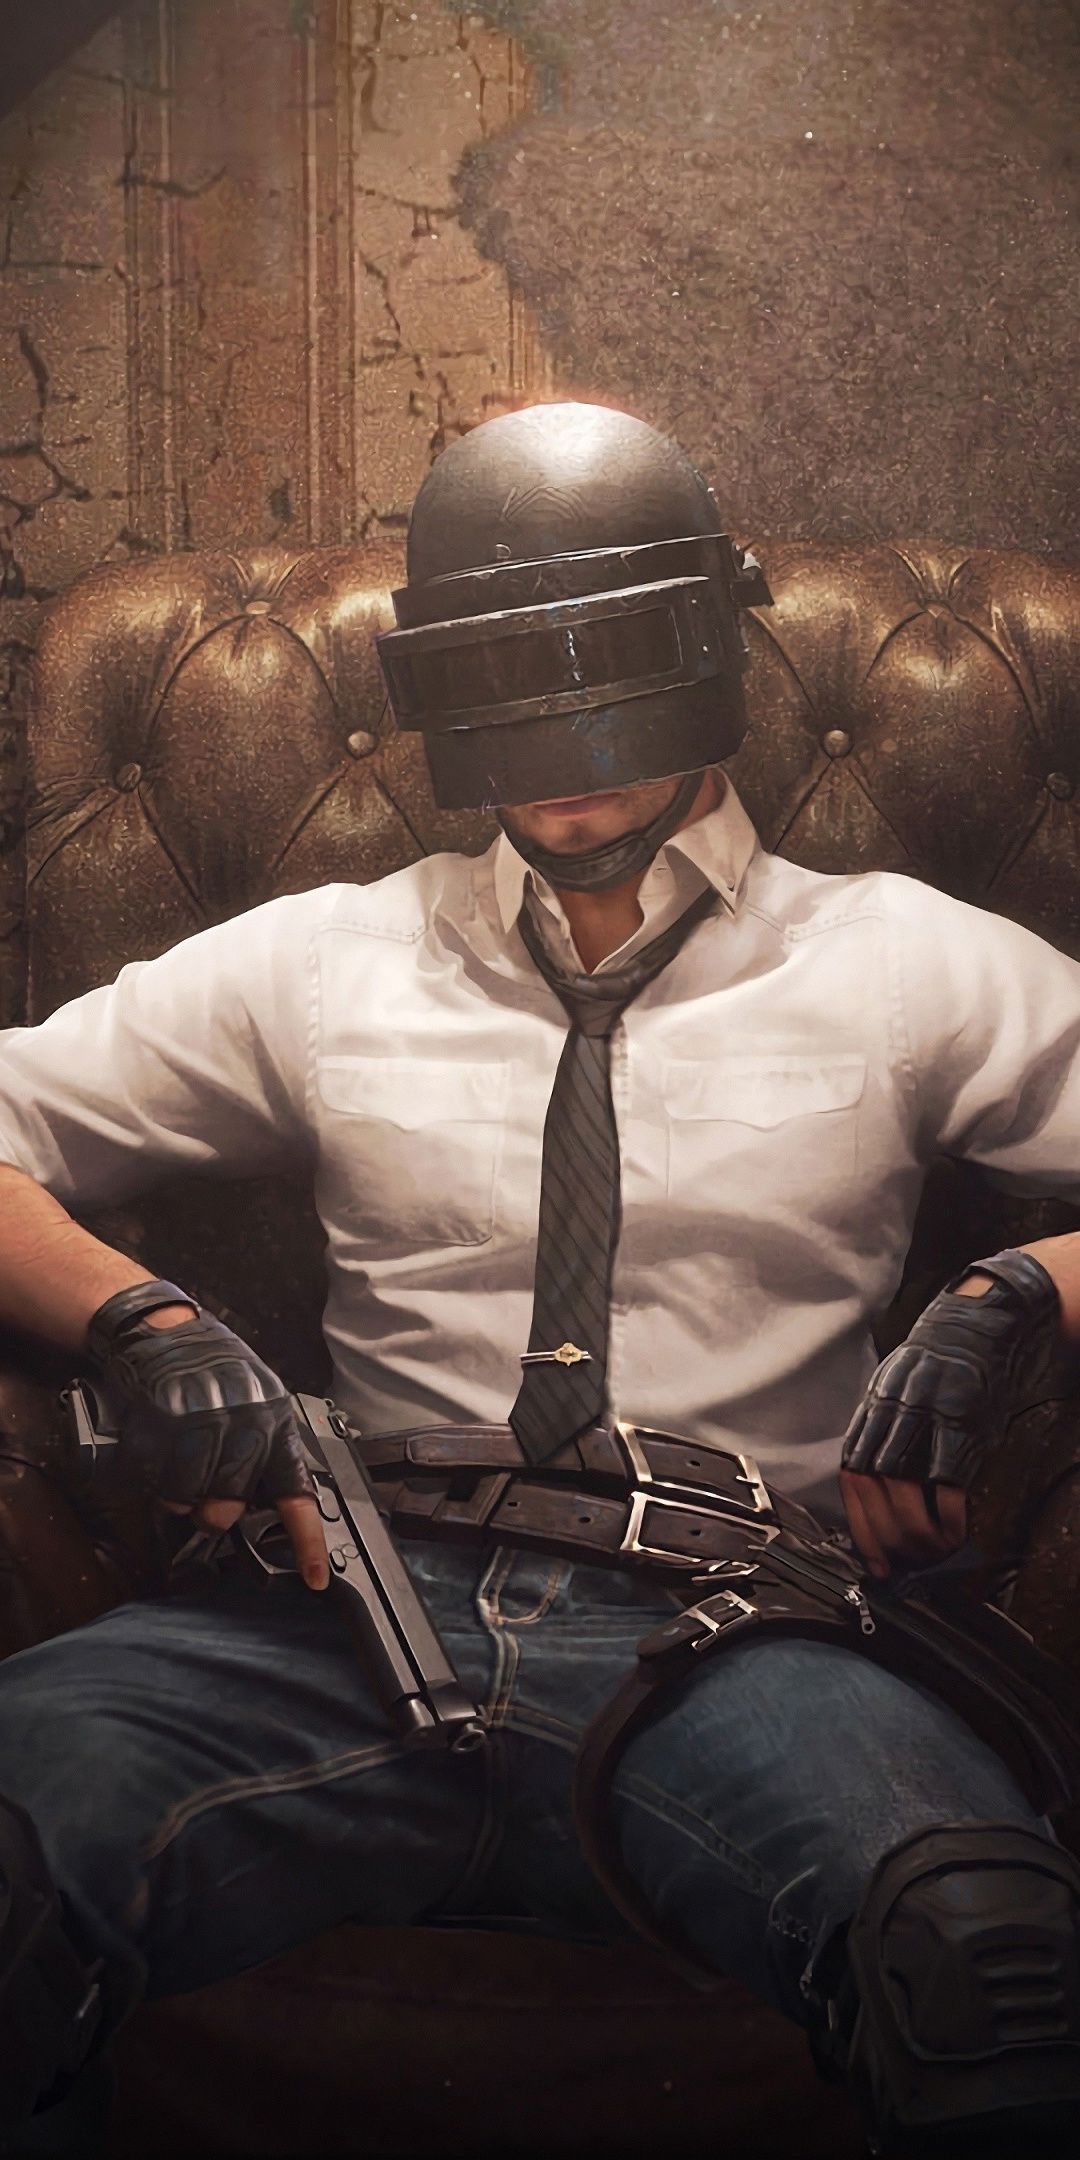 Download Pubg Wallpaper Hd Boy In 2020 Samsung Wallpaper Samsung Wallpaper Android Mobile Legend Wallpaper